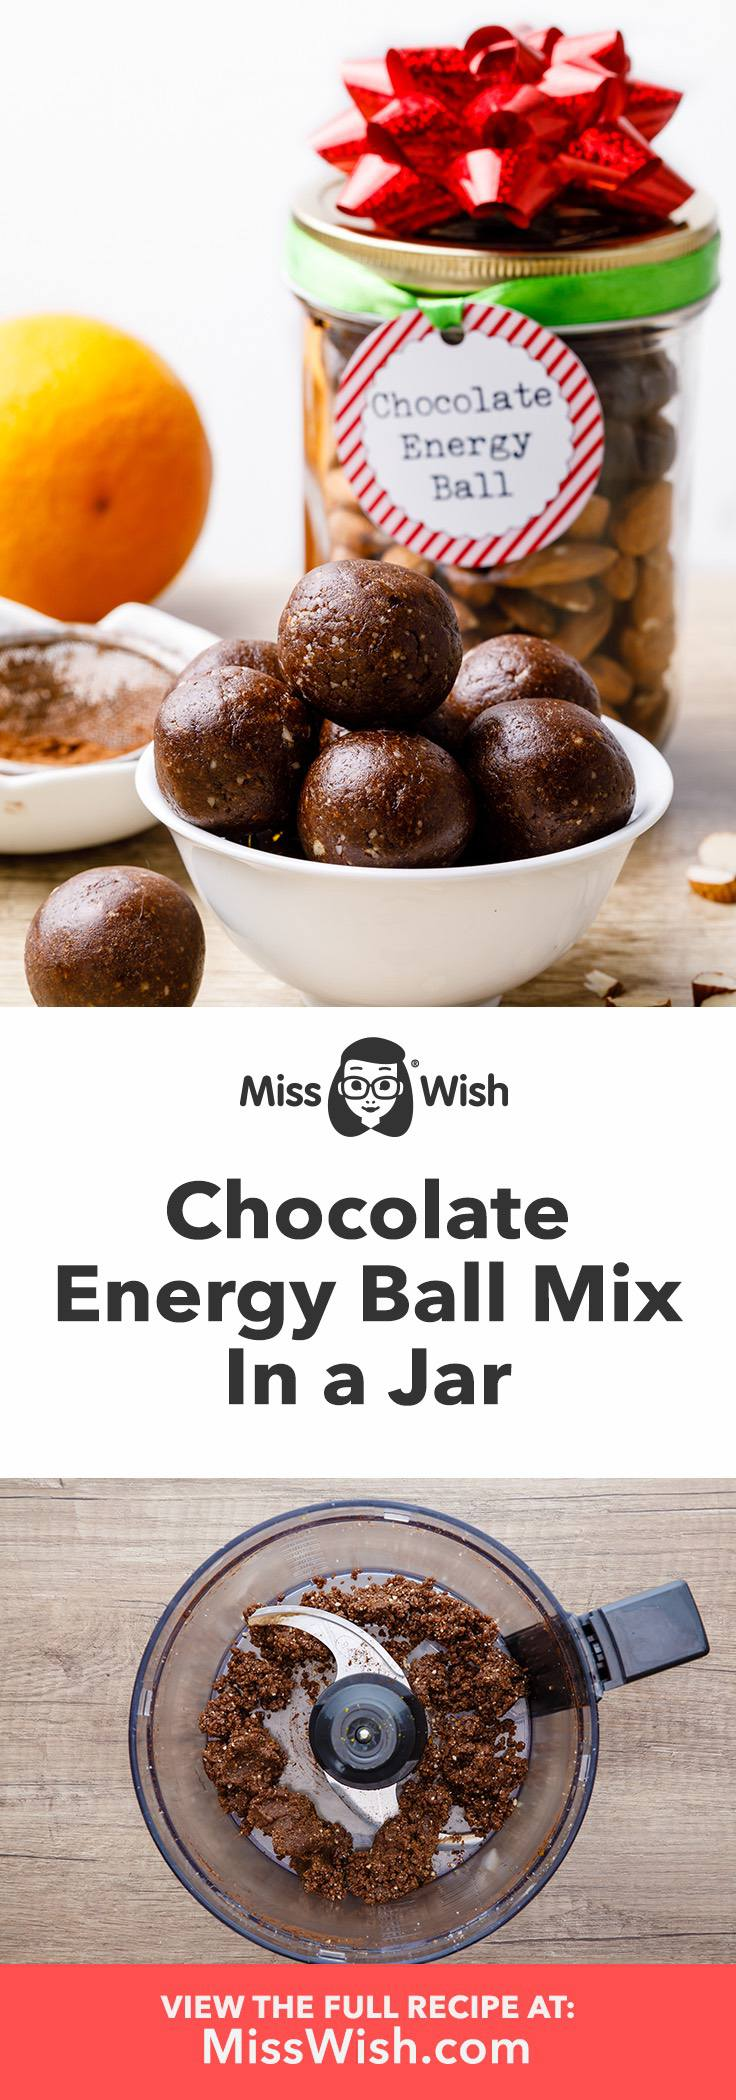 Make-ahead mix for the best chocolate energy balls.